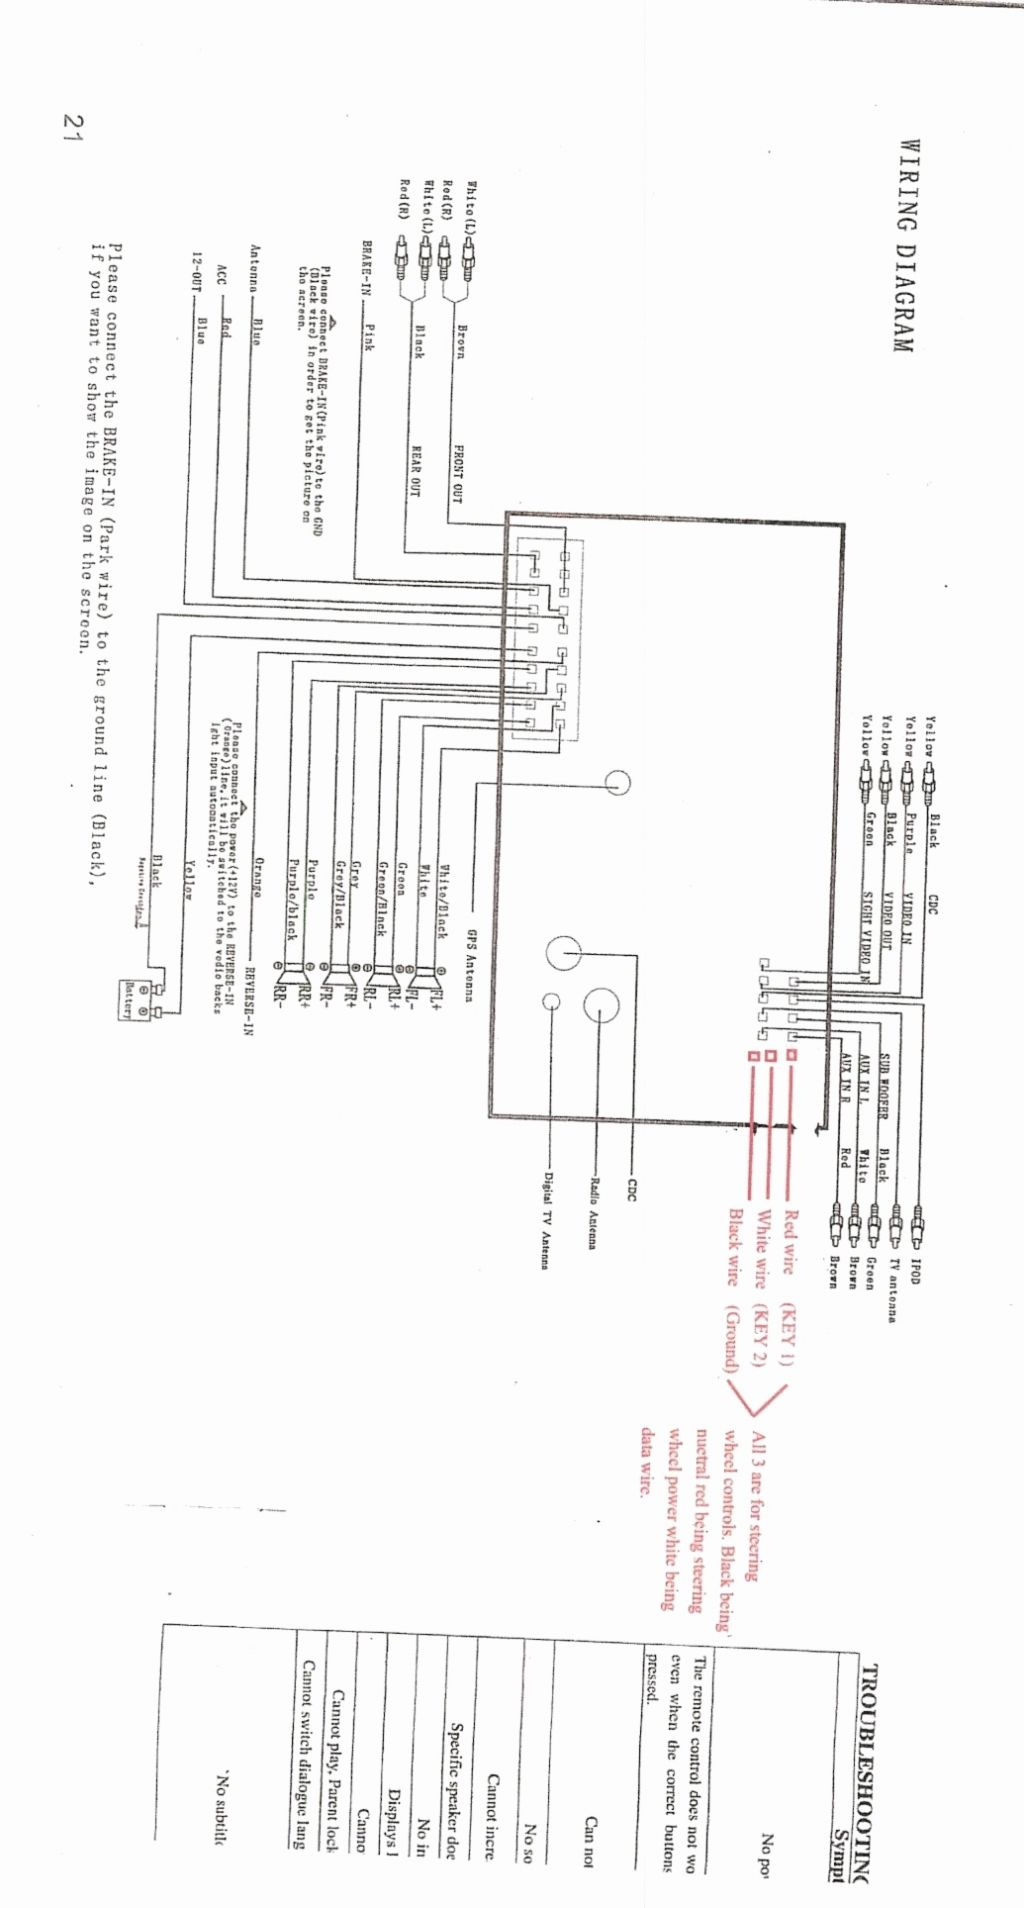 hight resolution of  armstrong furnaces diagrams white rodgers control wiring diagram white rodgers manuals white on white rodgers air conditioning